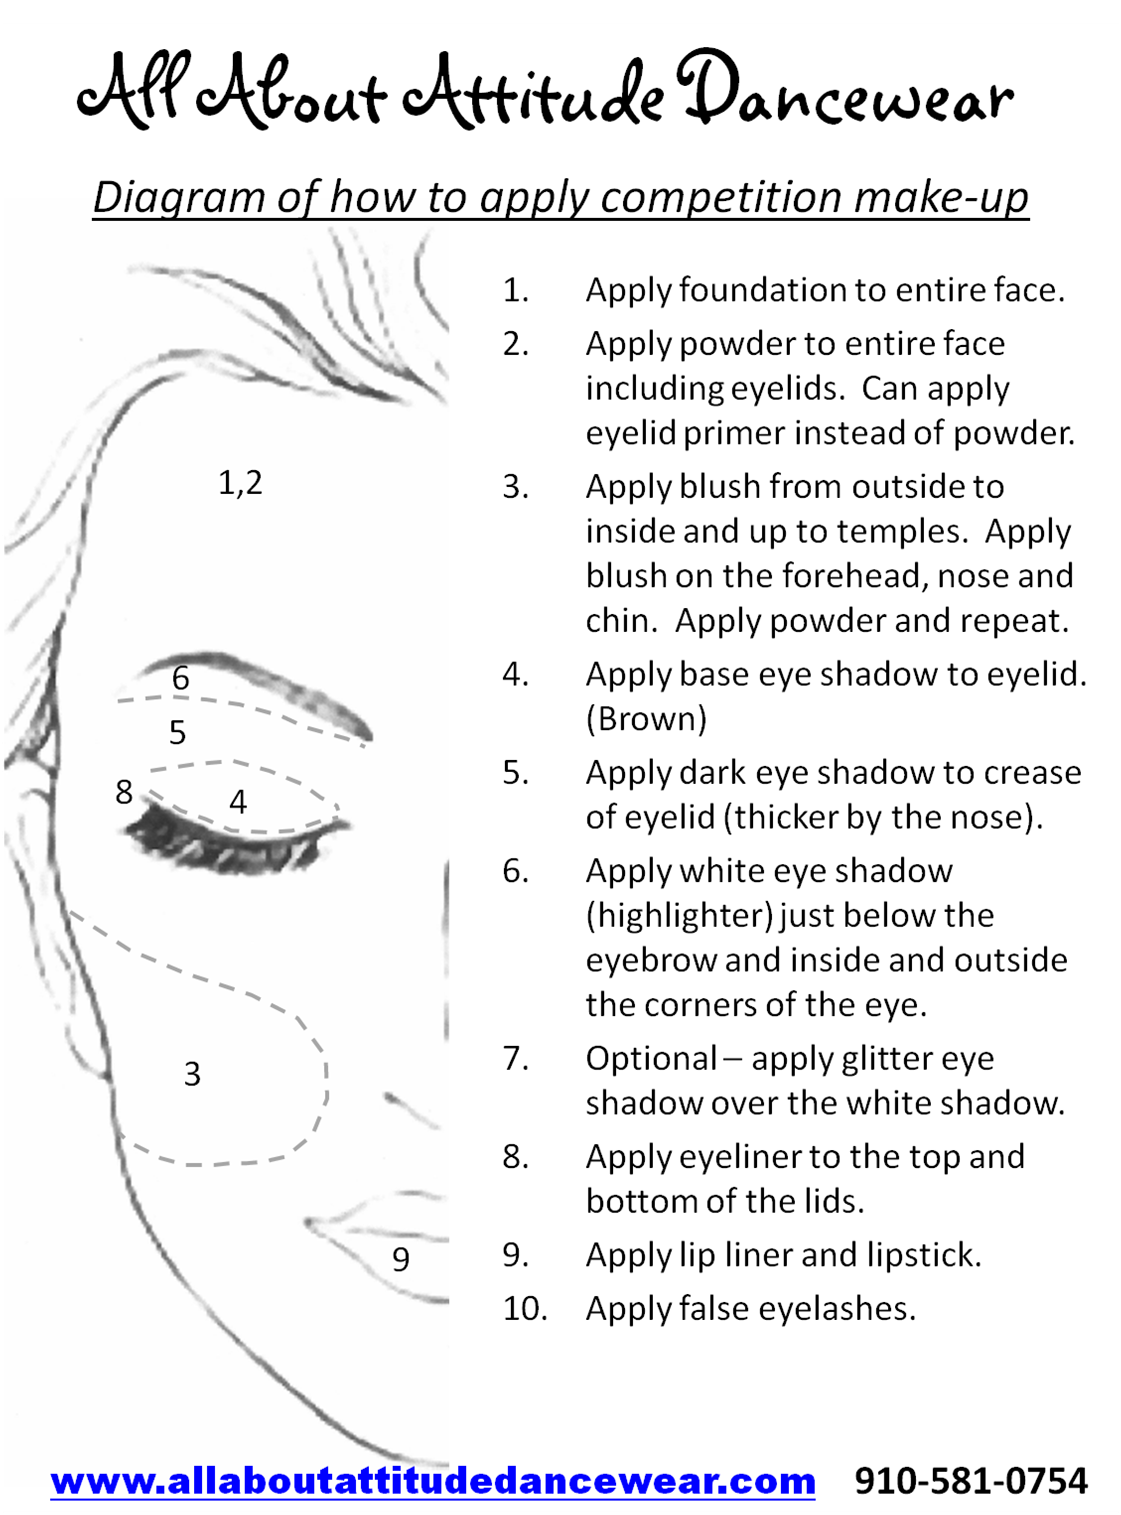 hight resolution of easy how to guide for applying makeup for any dance competition or recital event www allaboutattitudedancewear com